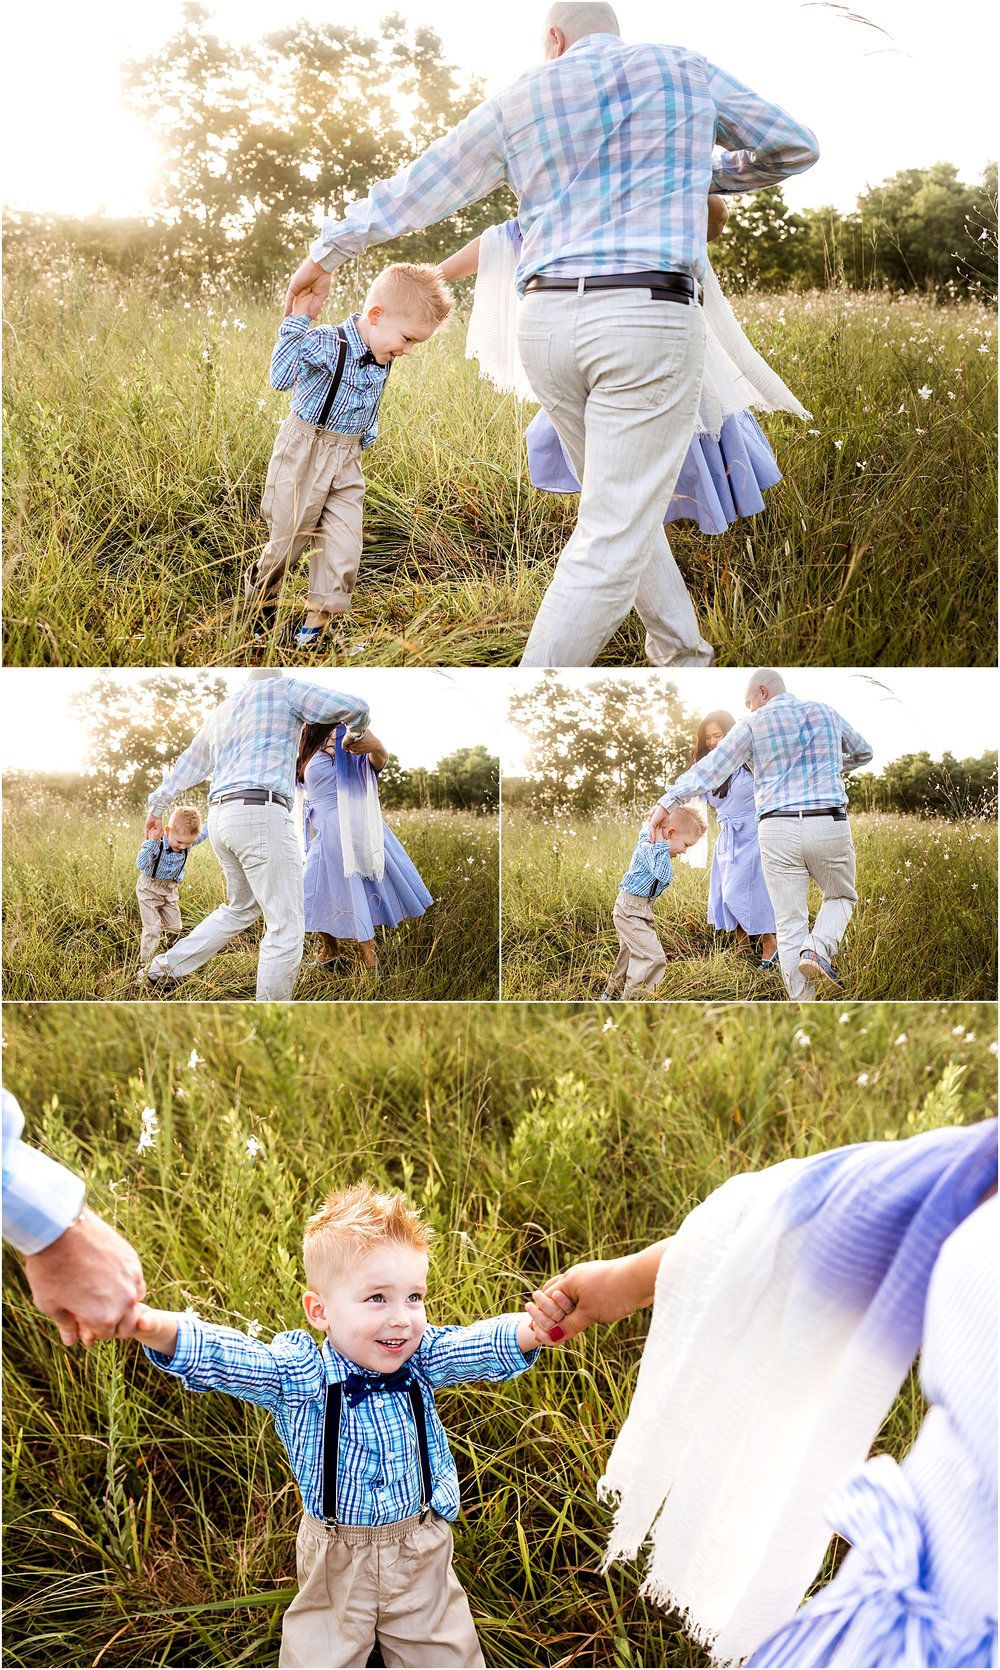 Houston, TX Family Photography featuring beautiful morning light. This sunrise session captures light, love, connection, and cuddles.